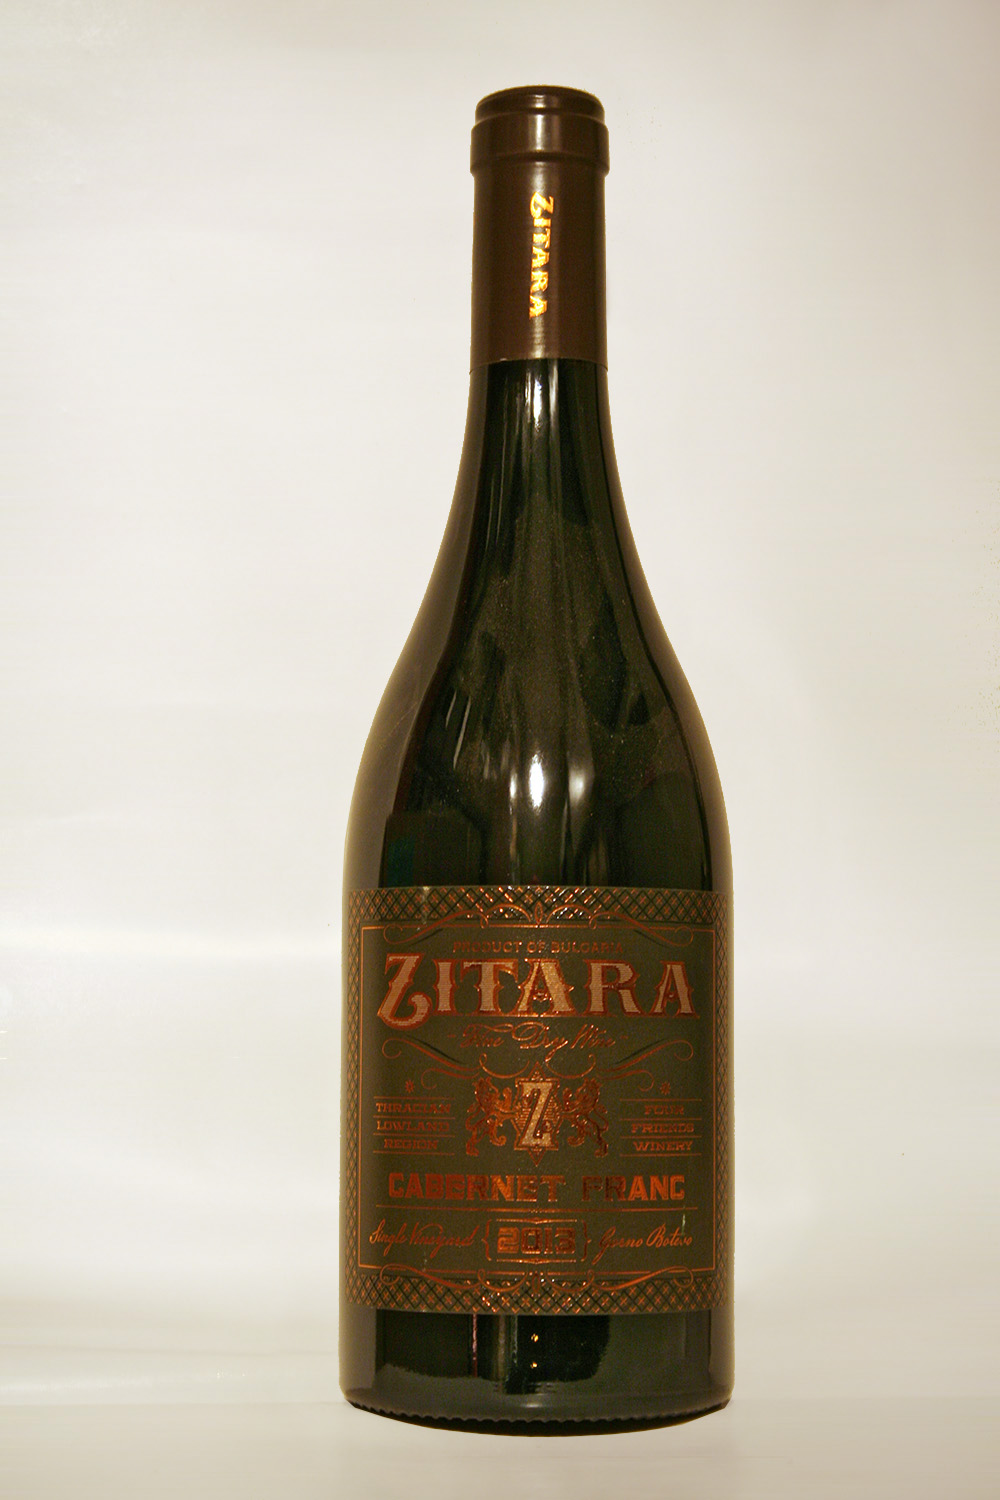 Zitara Cabernet Franc Single Vineyard 2013